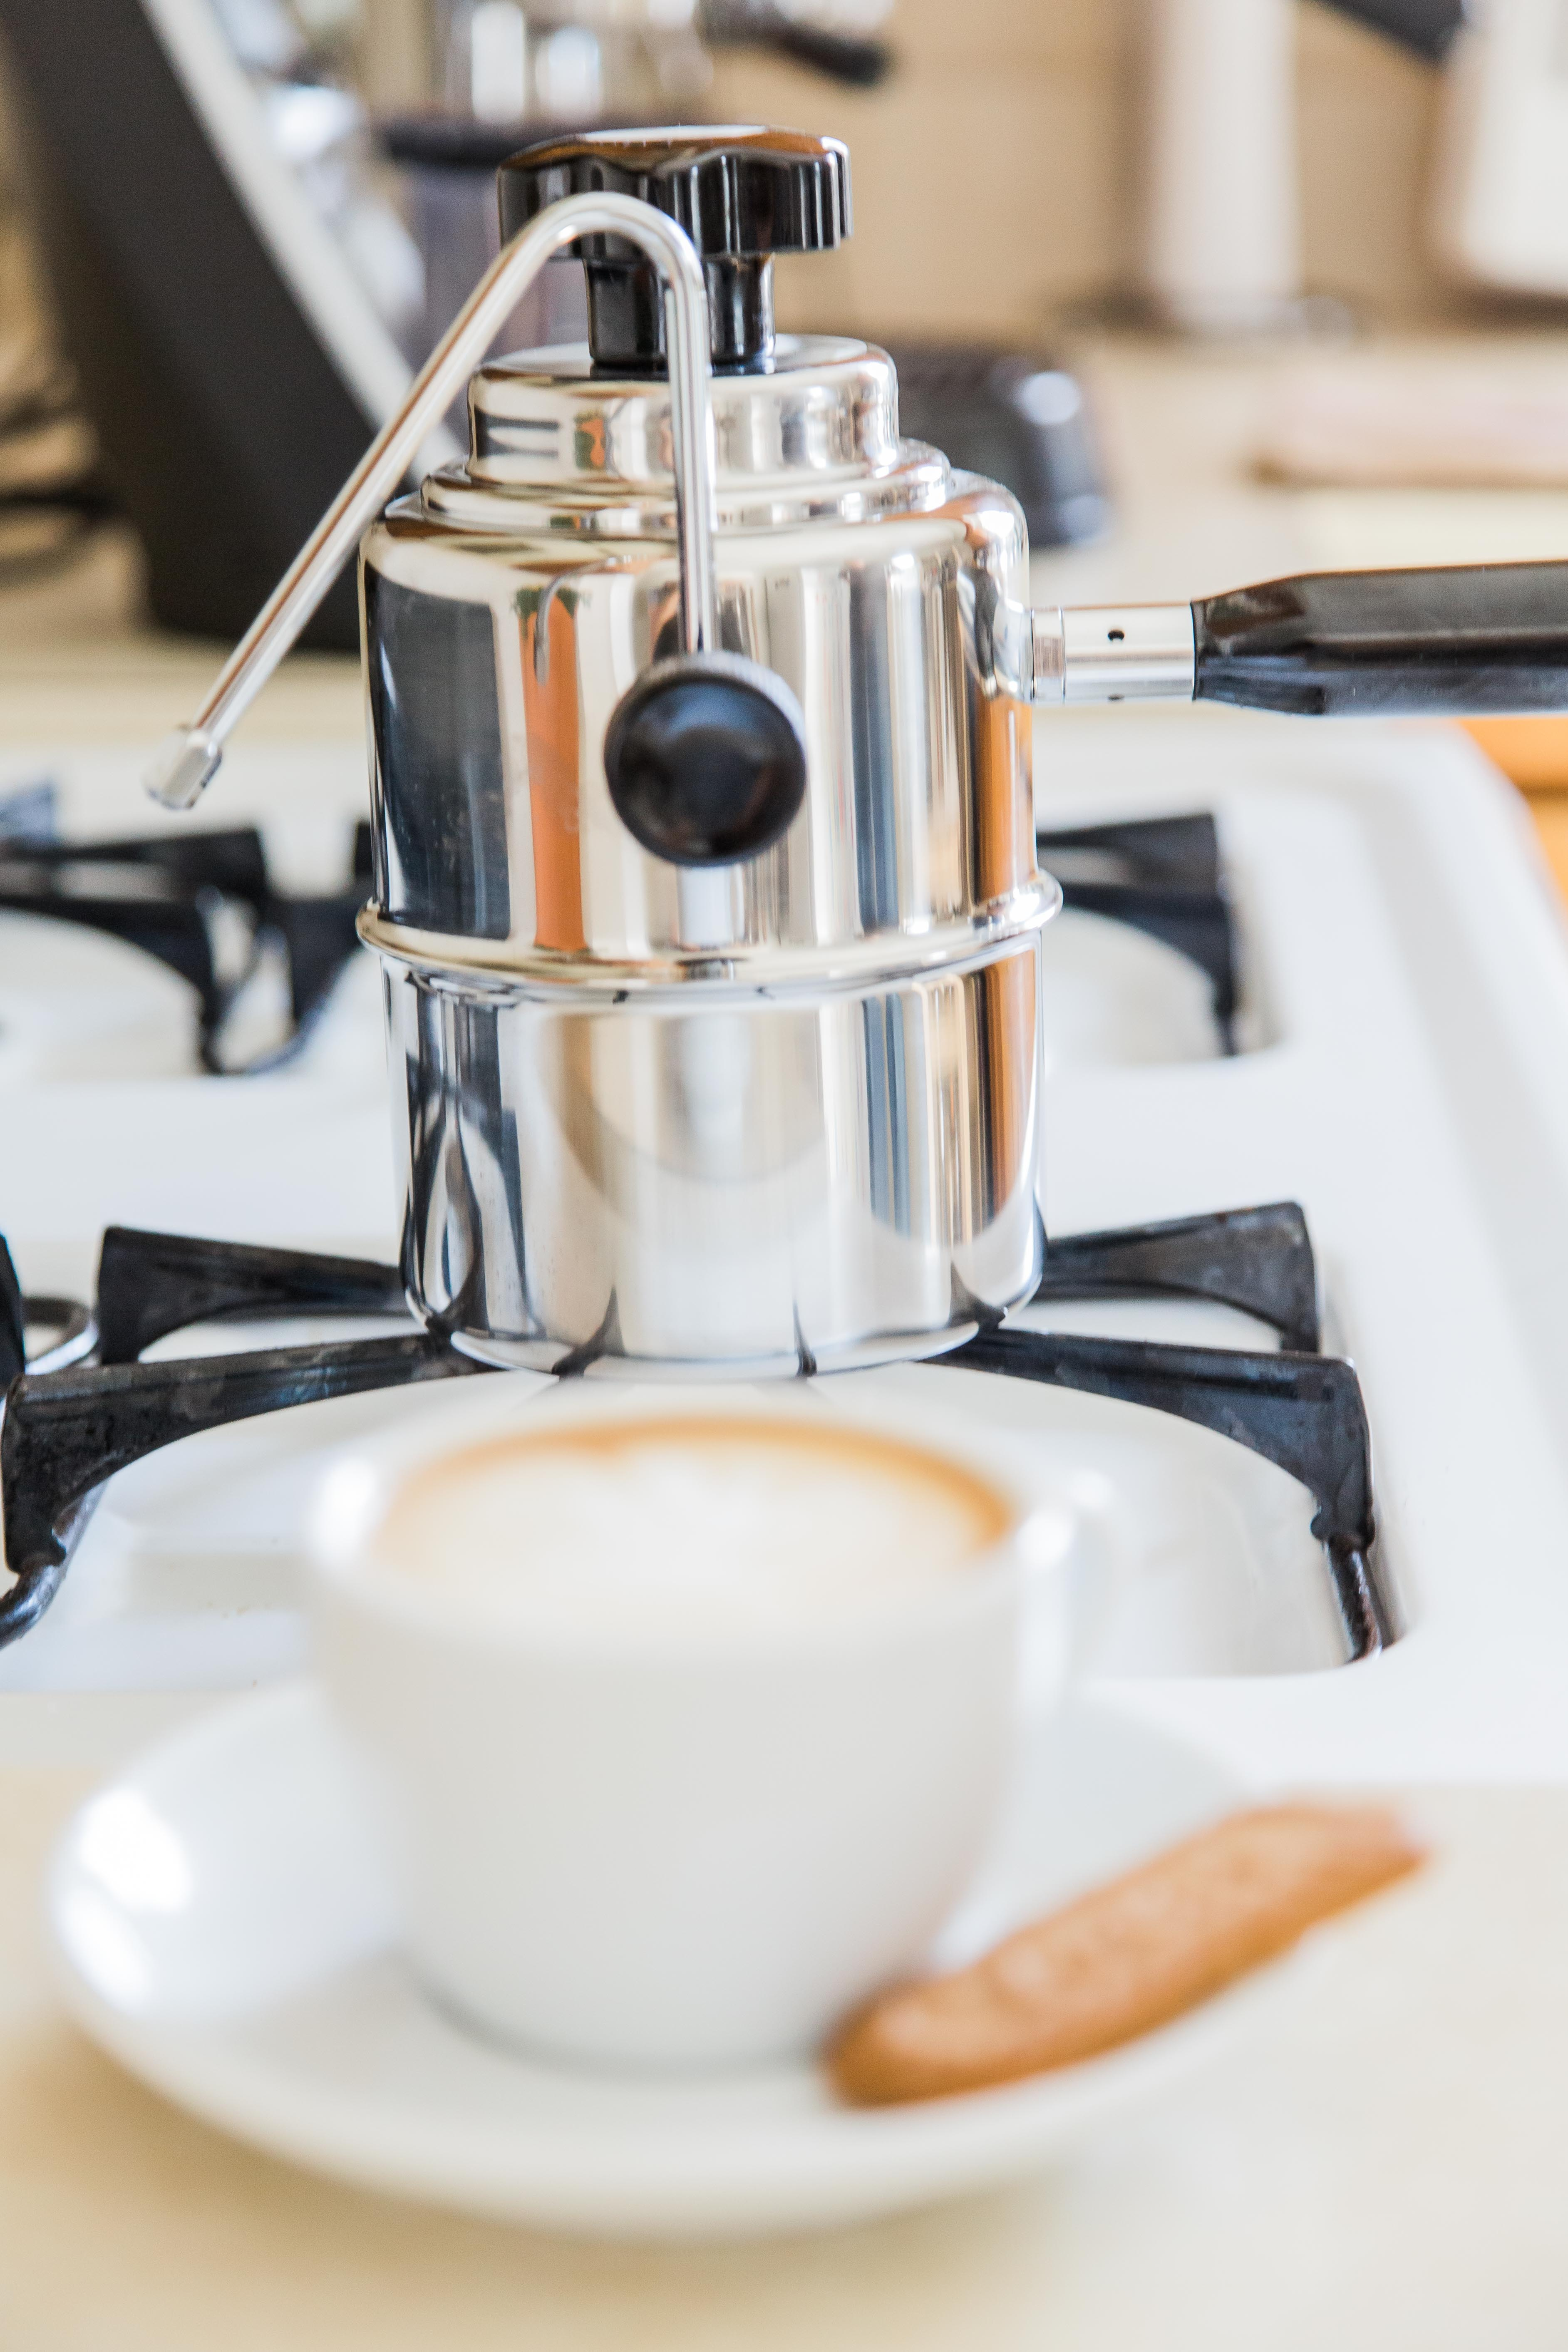 Sit back and enjoy an excellent latte at home thanks to the Bellman stovetop steamer.